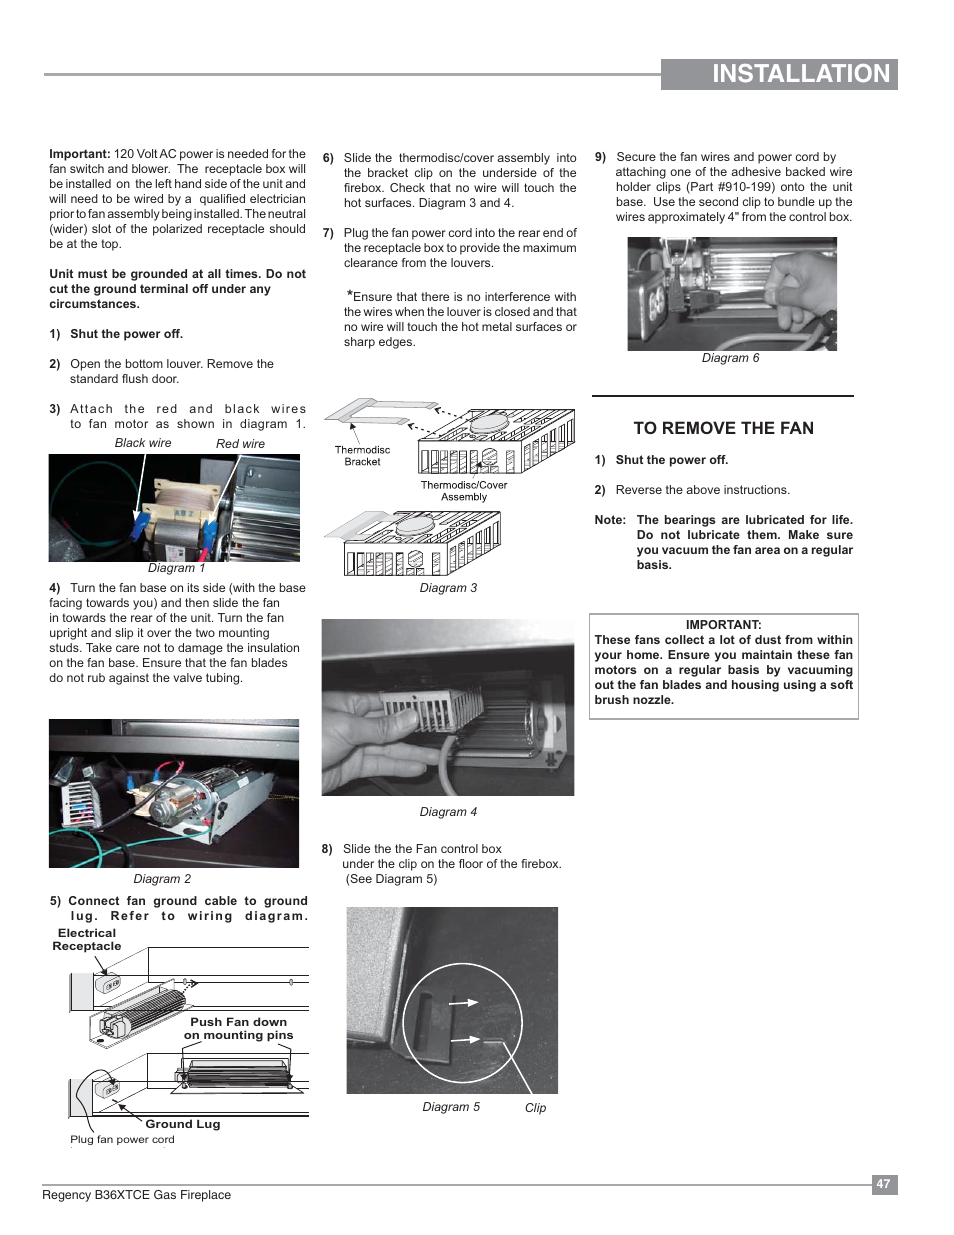 Installation Optional Fan Regency Bellavista B36xtce Gas Fireplace Wiring Diagram Medium User Manual Page 47 72